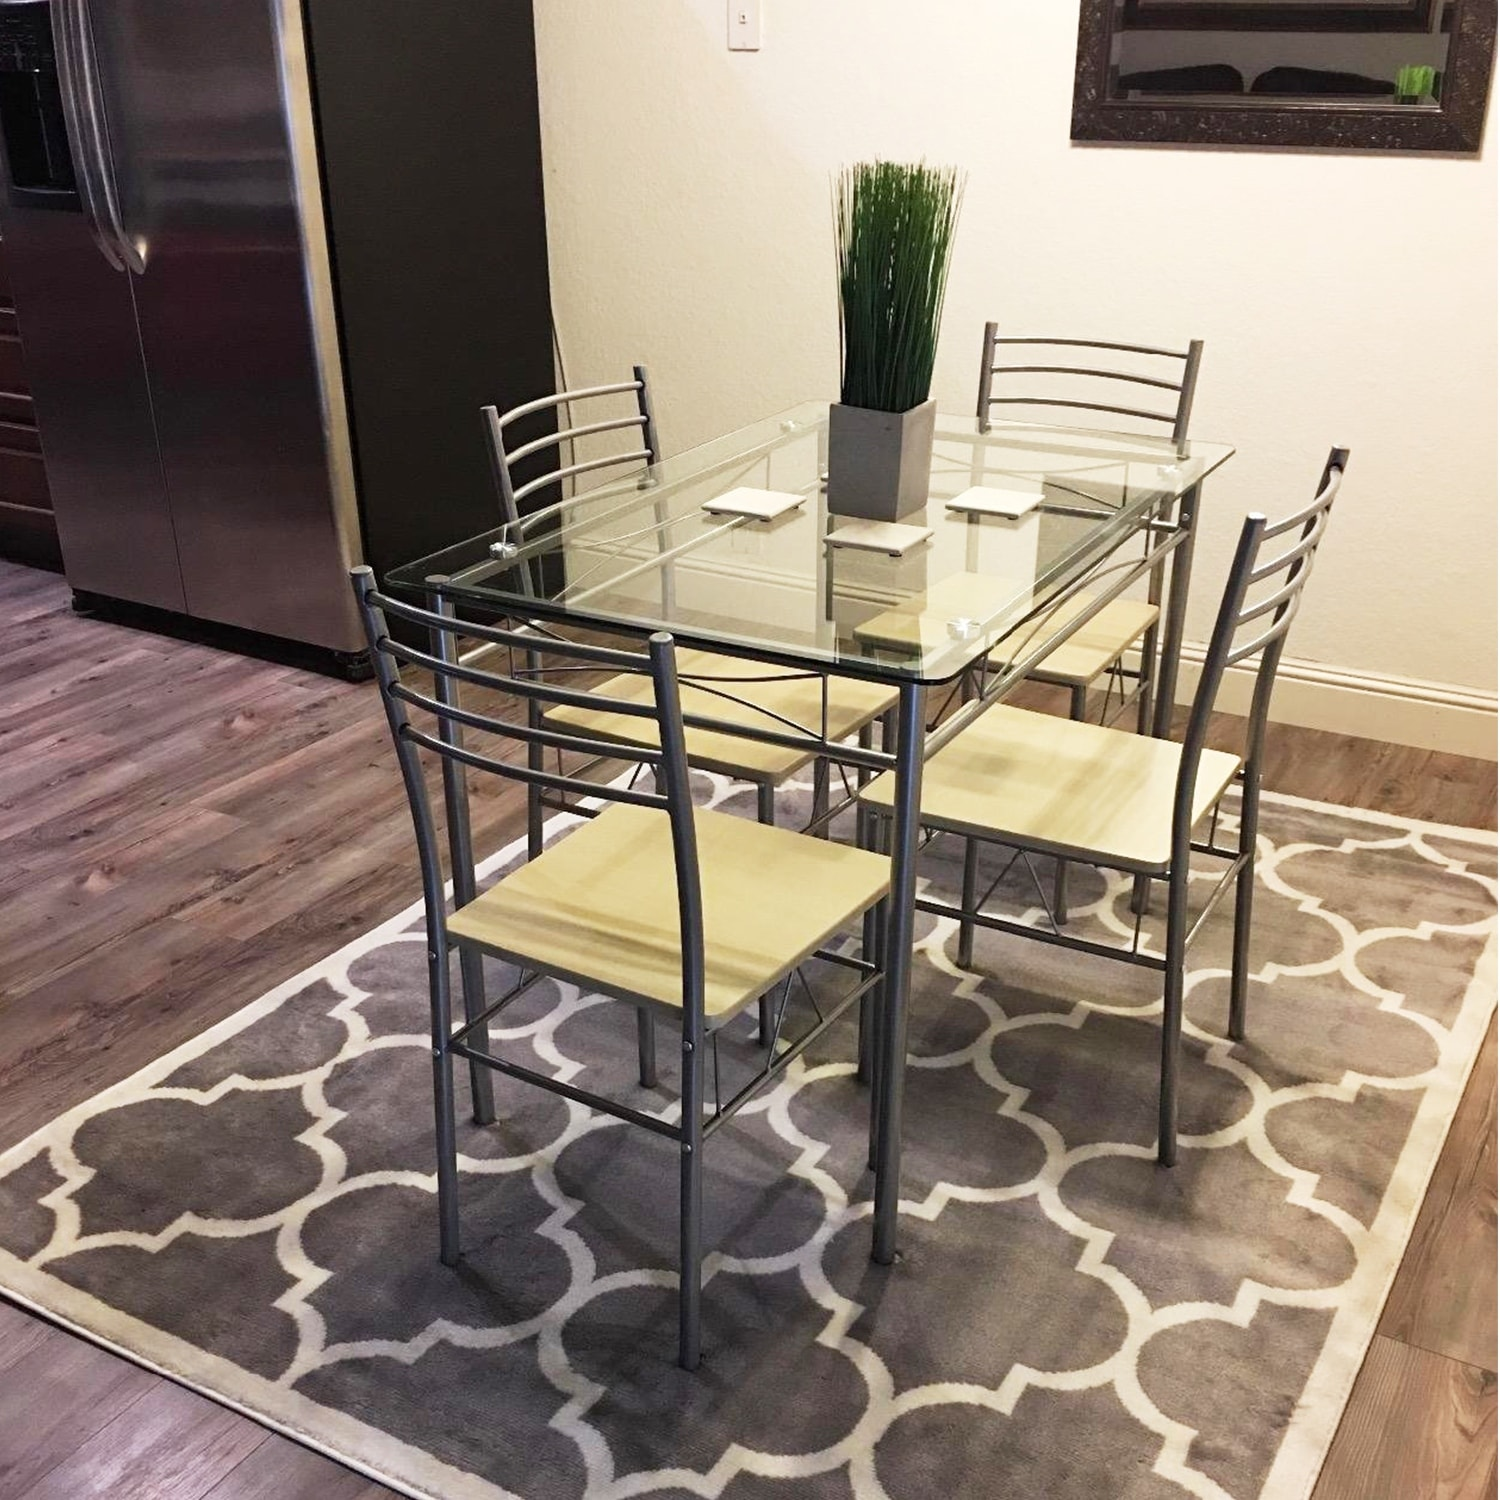 Shop kitchen dining table setglass table and 4 chairsblacksilver shop kitchen dining table setglass table and 4 chairsblacksilver free shipping today overstock 18541669 watchthetrailerfo